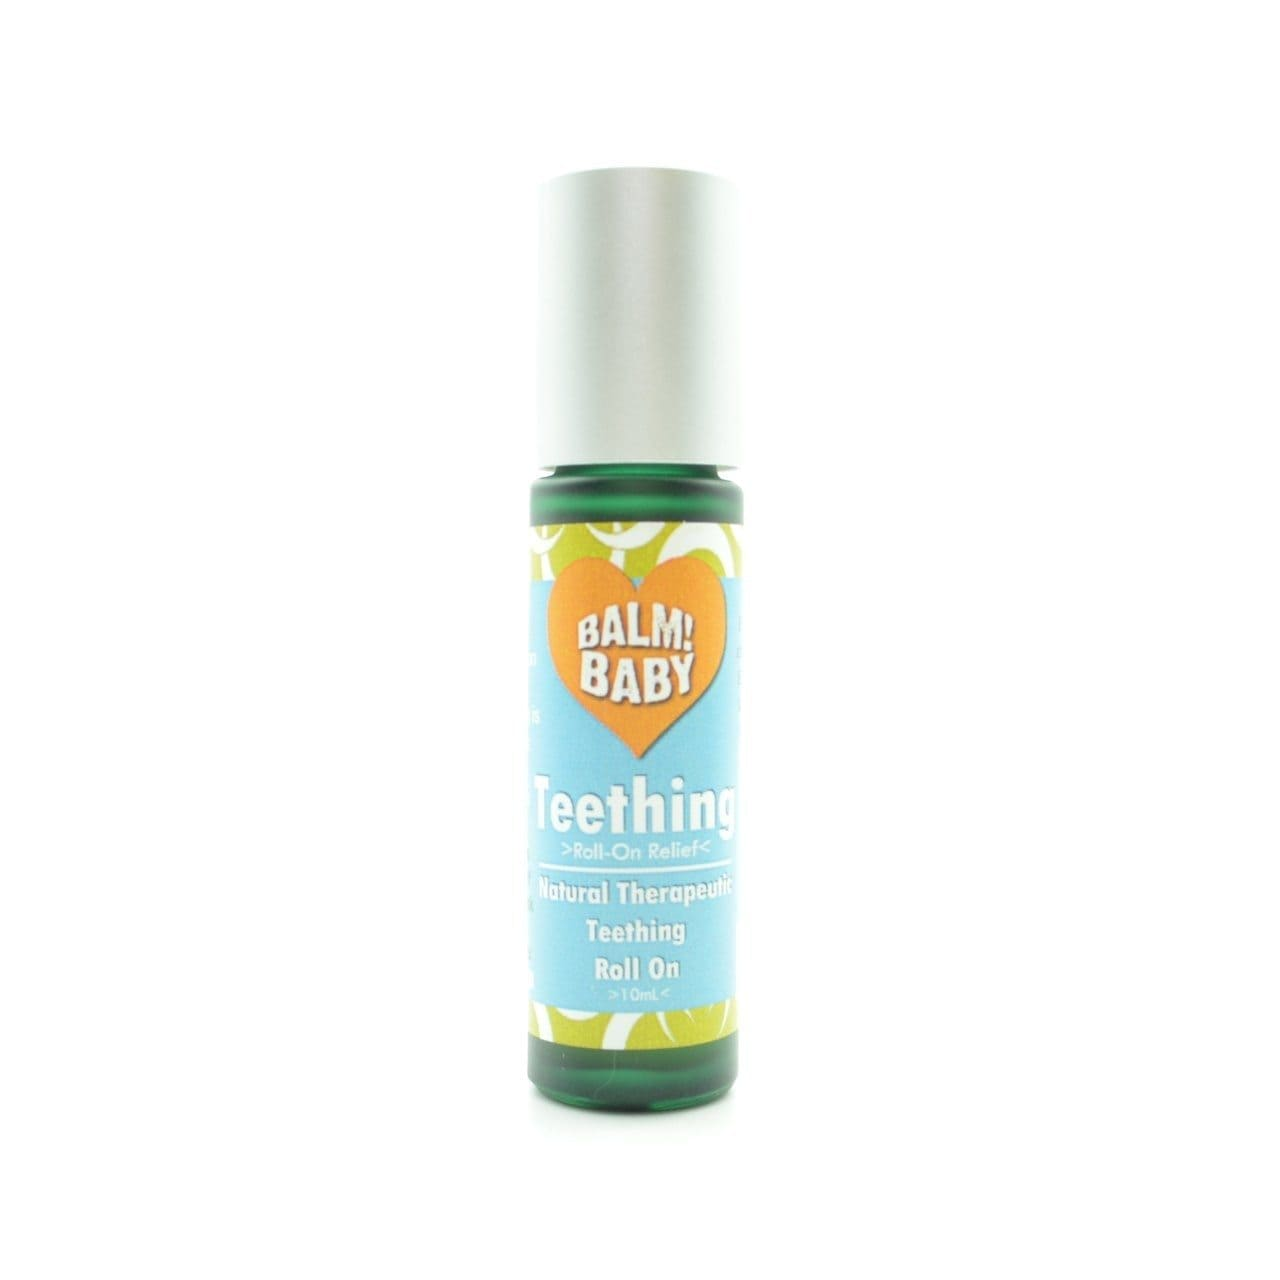 Balm! Baby Teething Roll On 10 ml